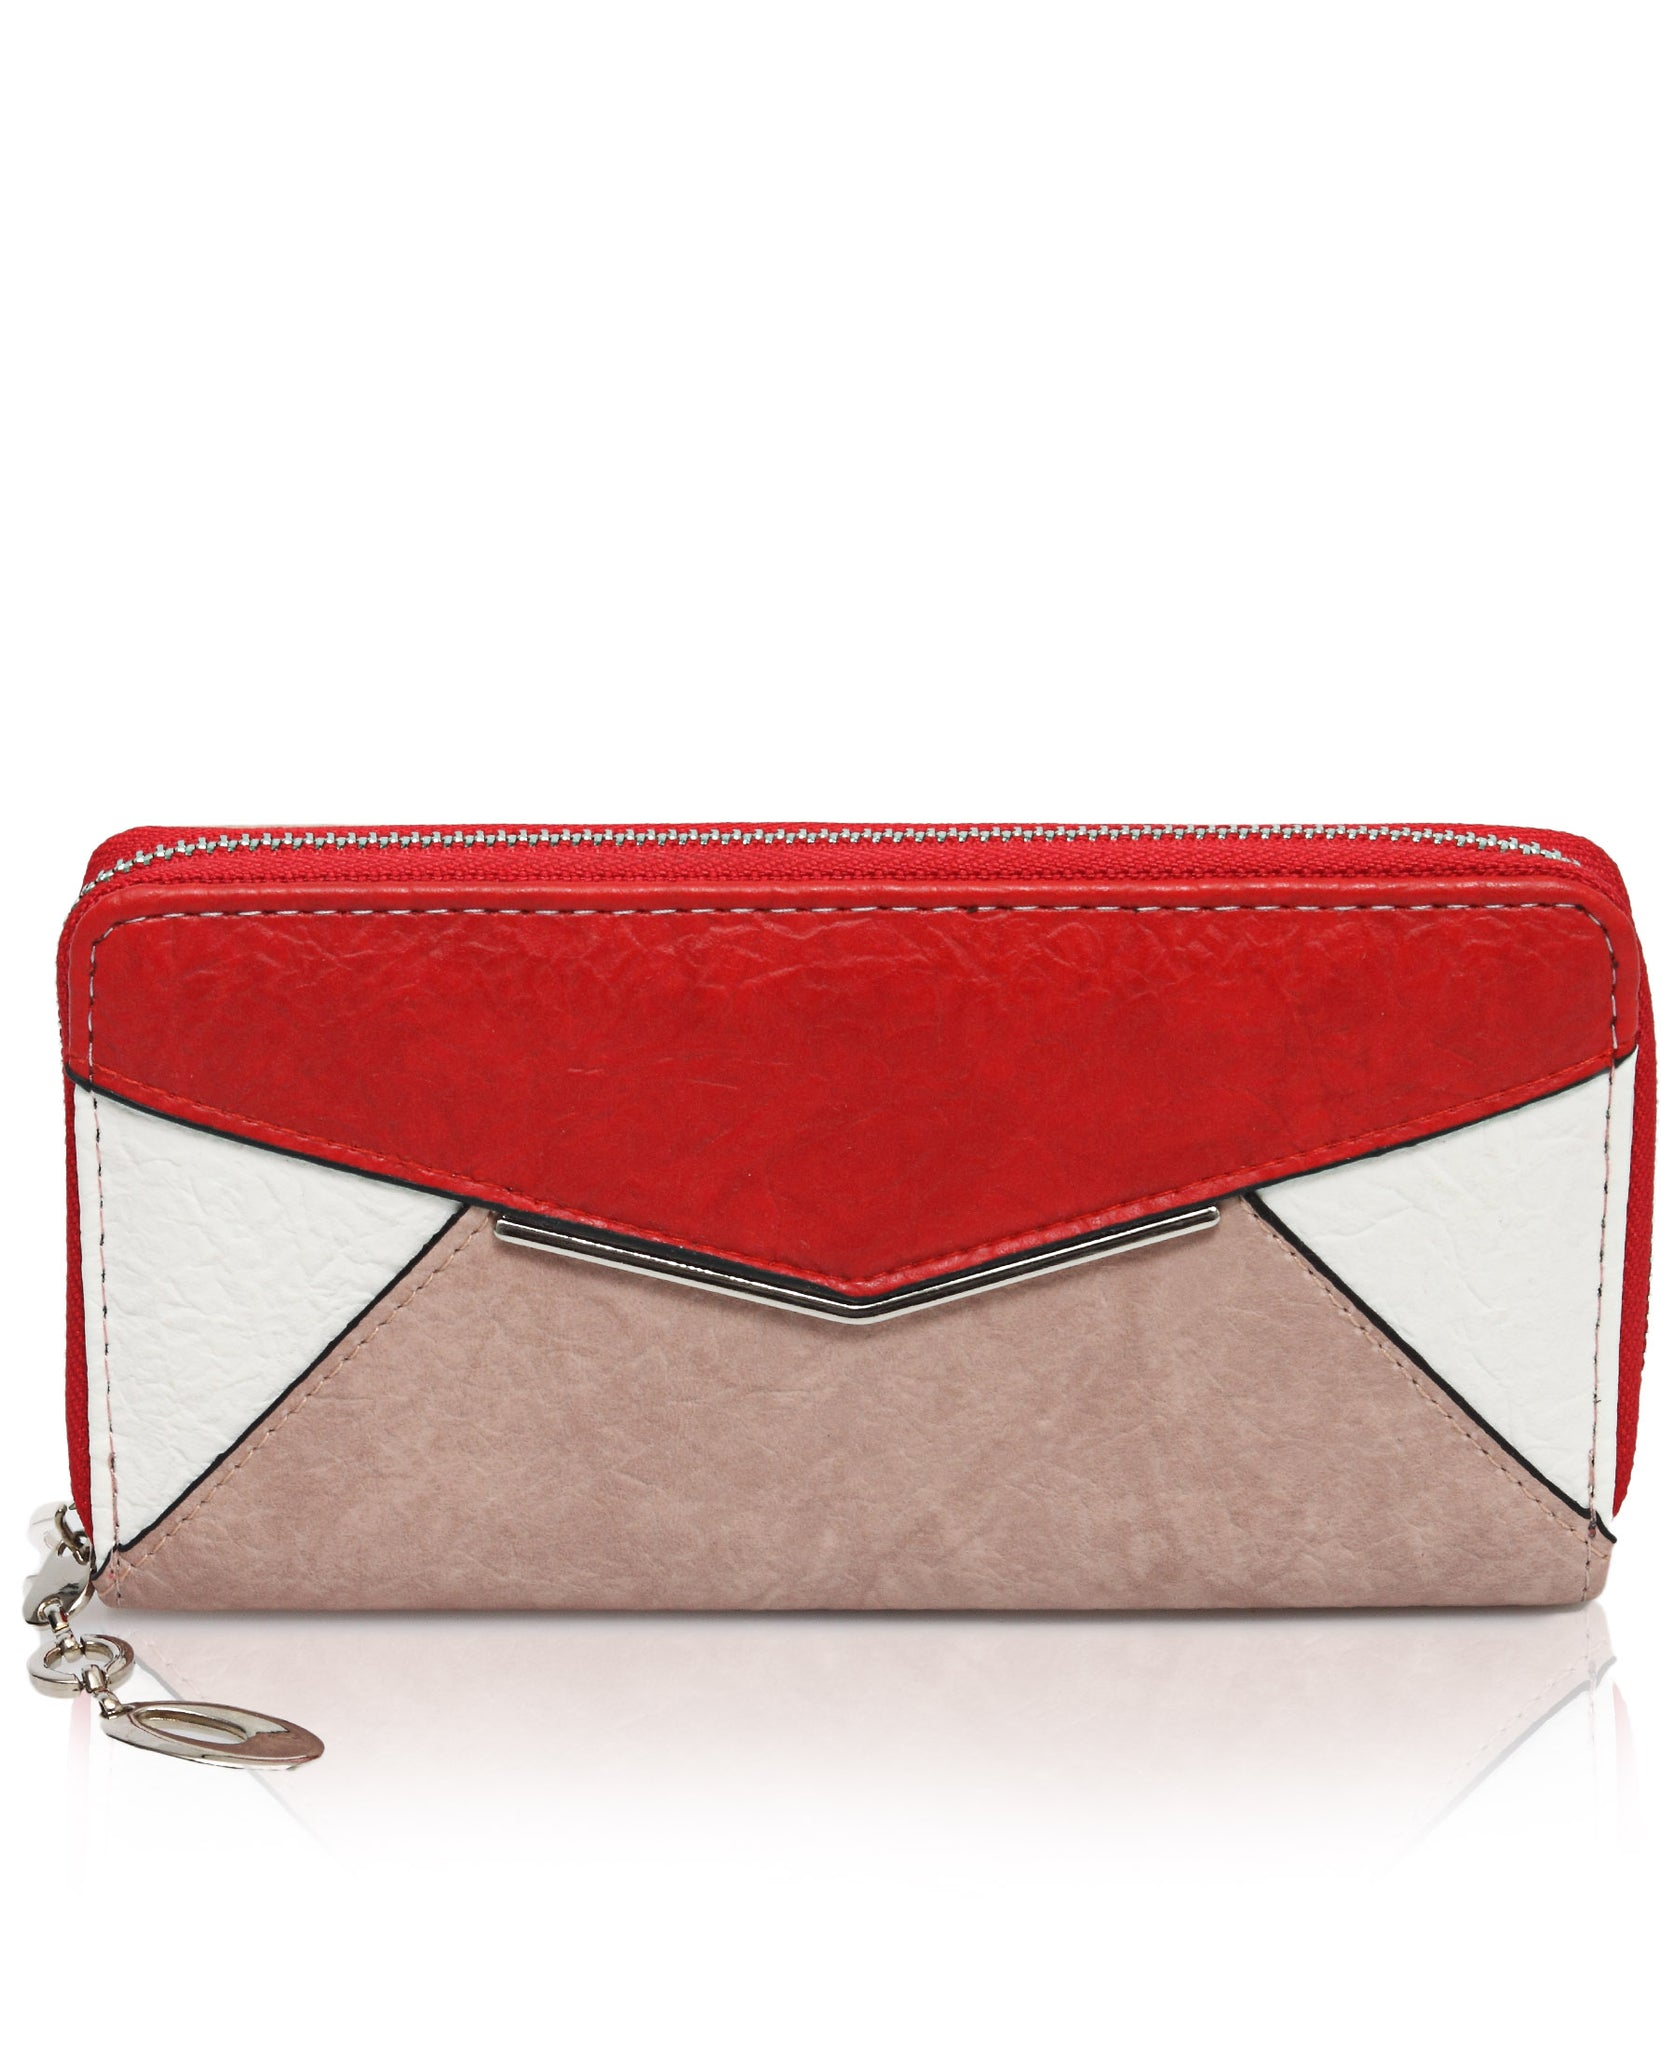 Zip Around Wallet - Mink